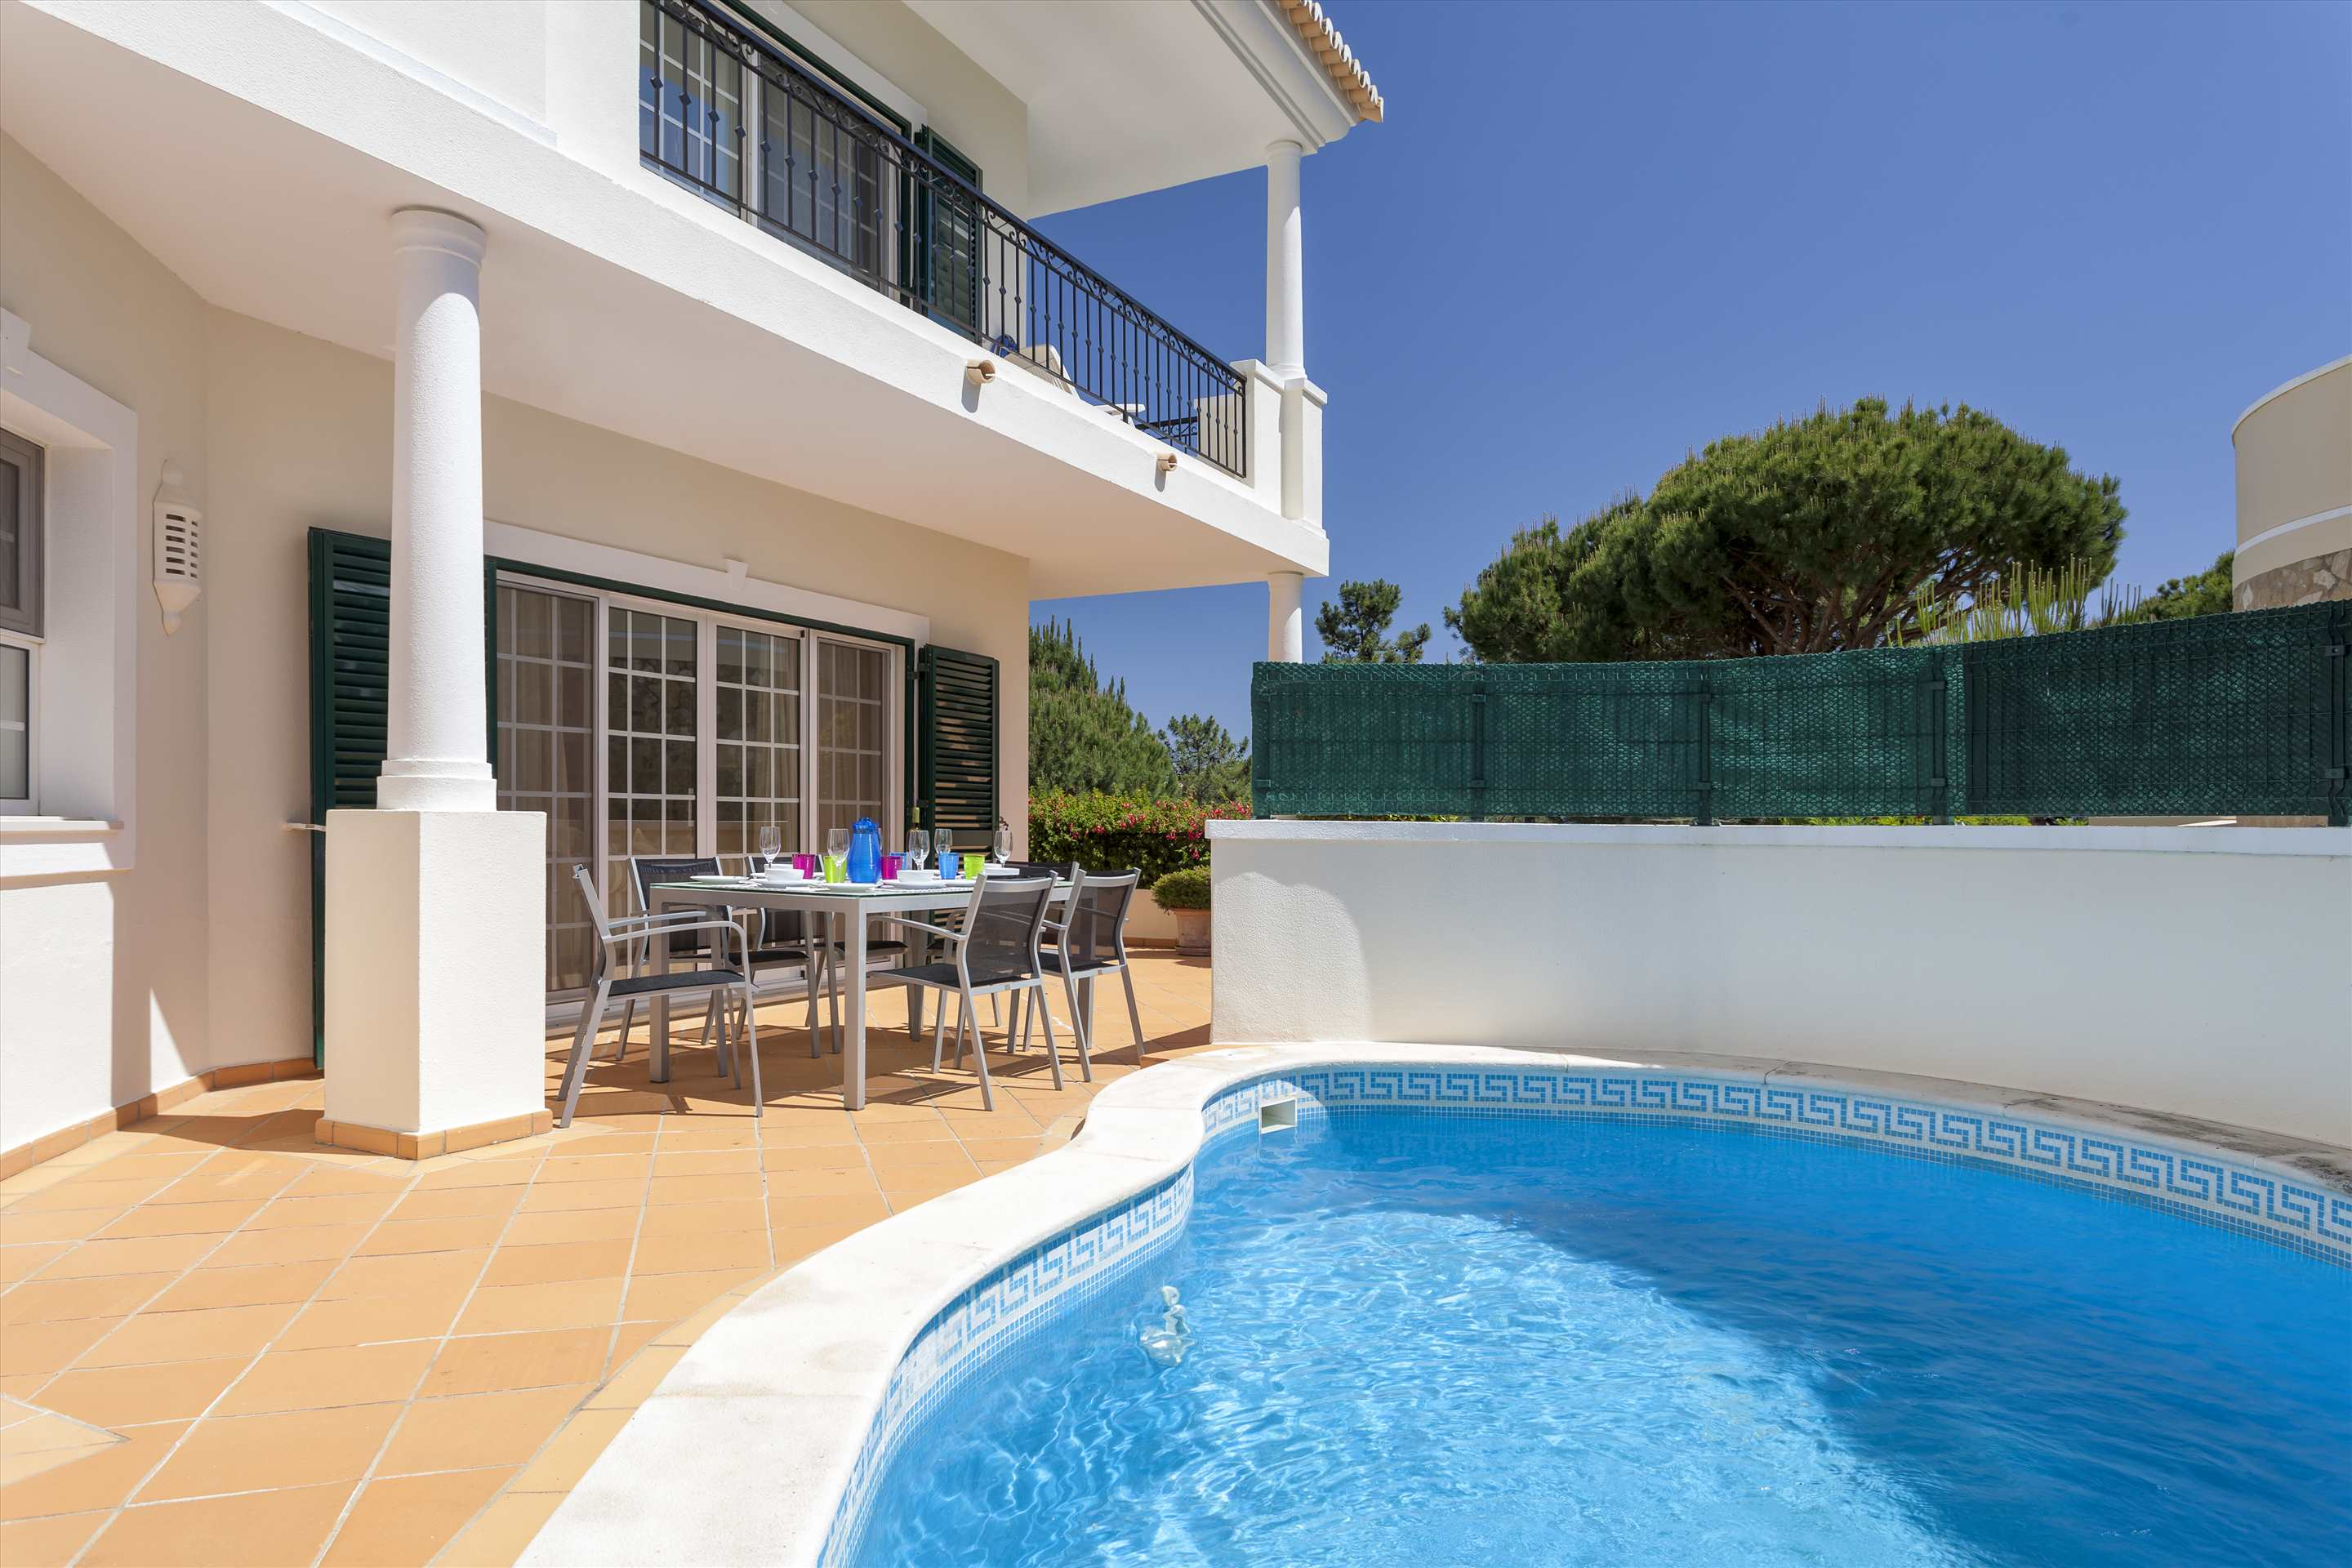 Villa Catarina, 3 bedroom apartment in Vale do Lobo, Algarve Photo #15